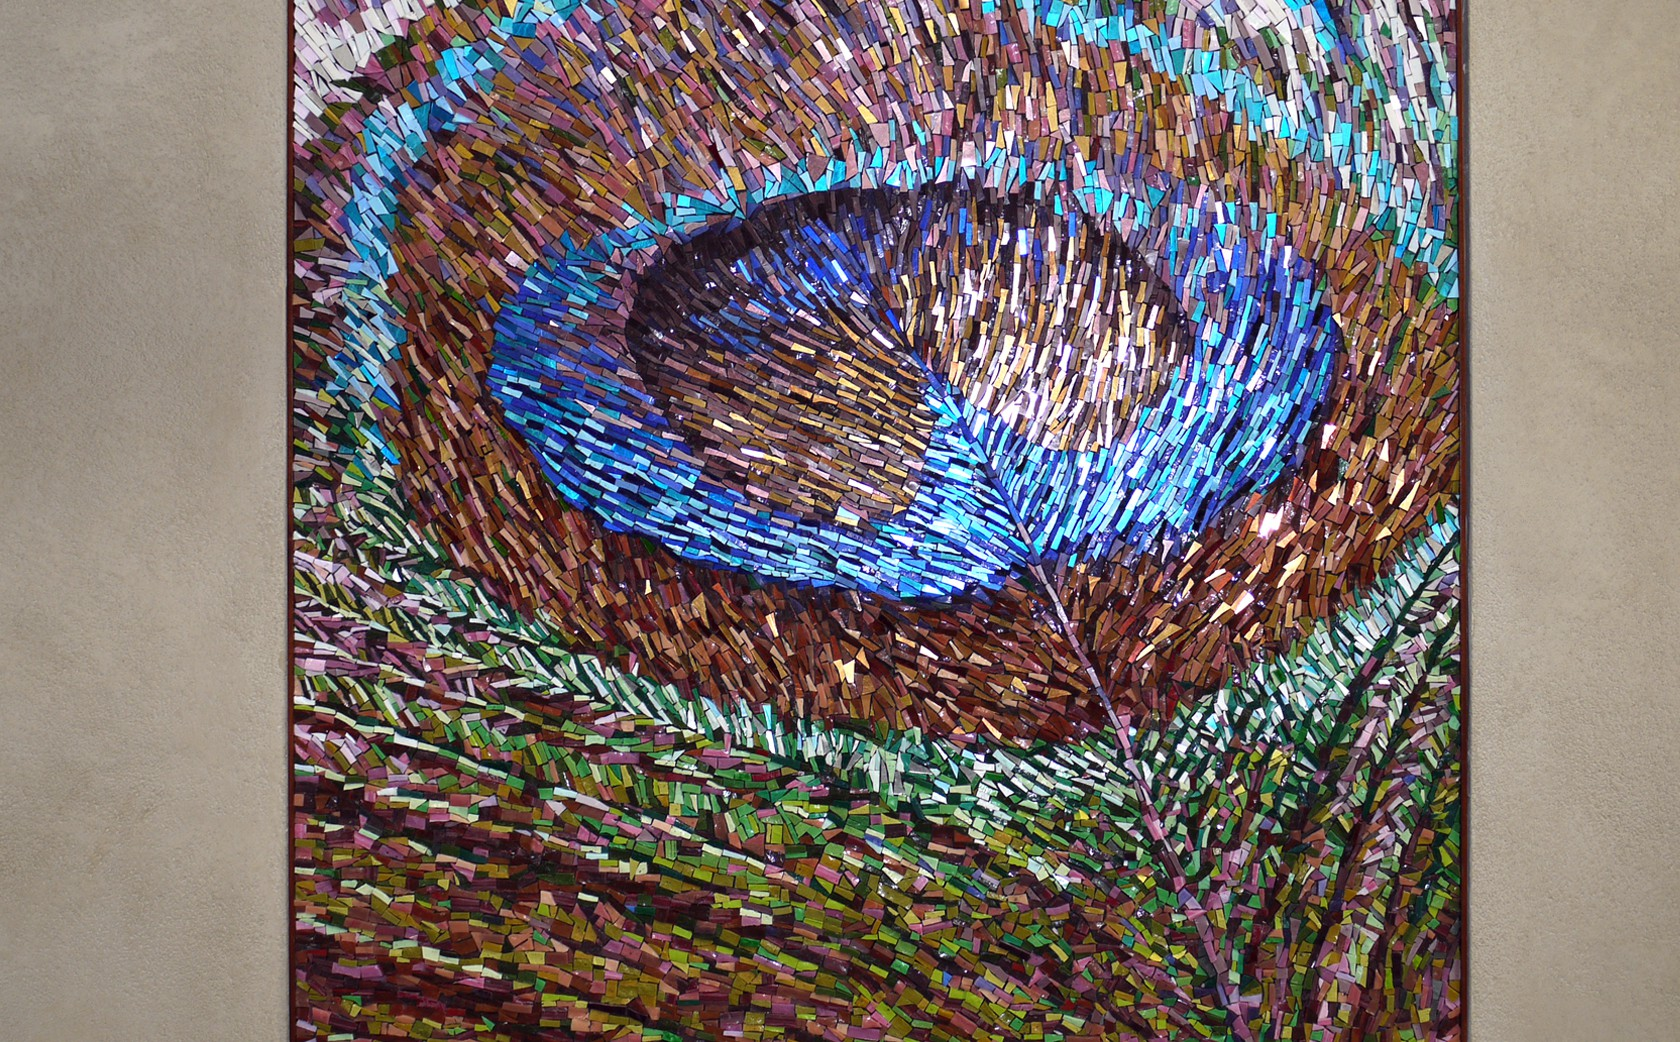 Peacock Feather Mosaic 1 x 1 metres